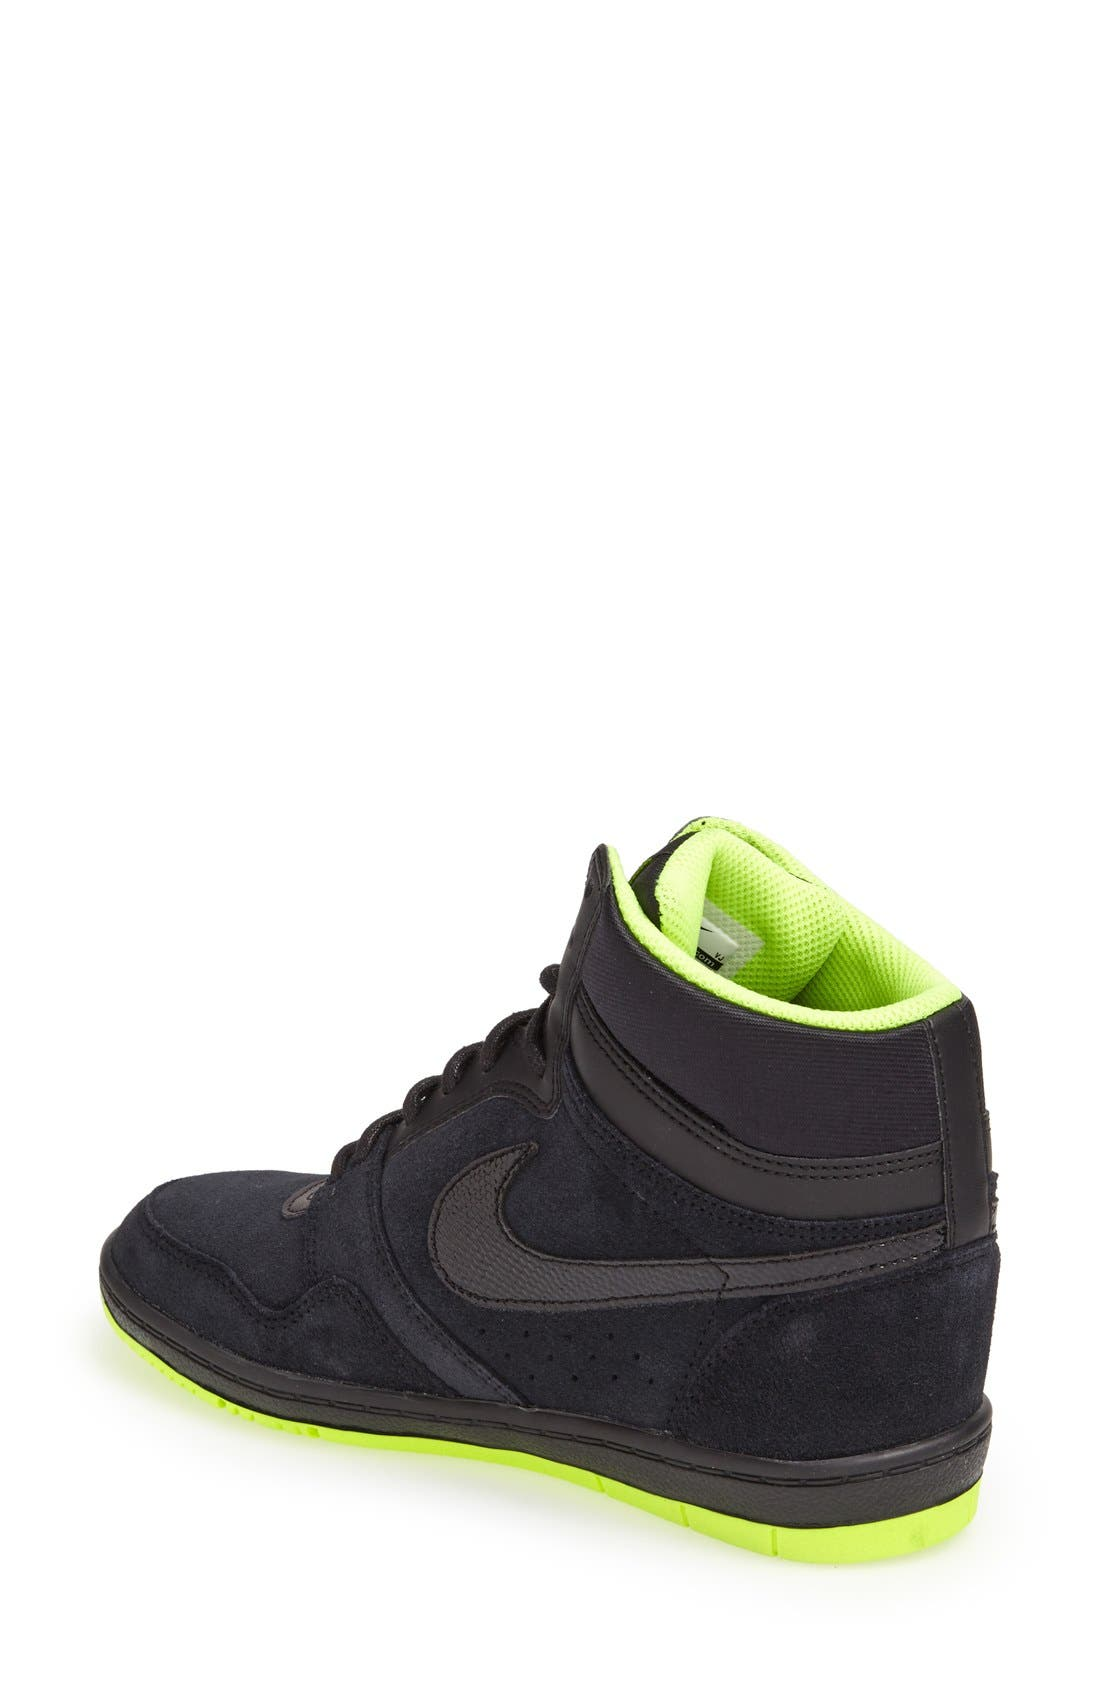 Alternate Image 2  - Nike 'Force Sky High' Sneaker (Women)